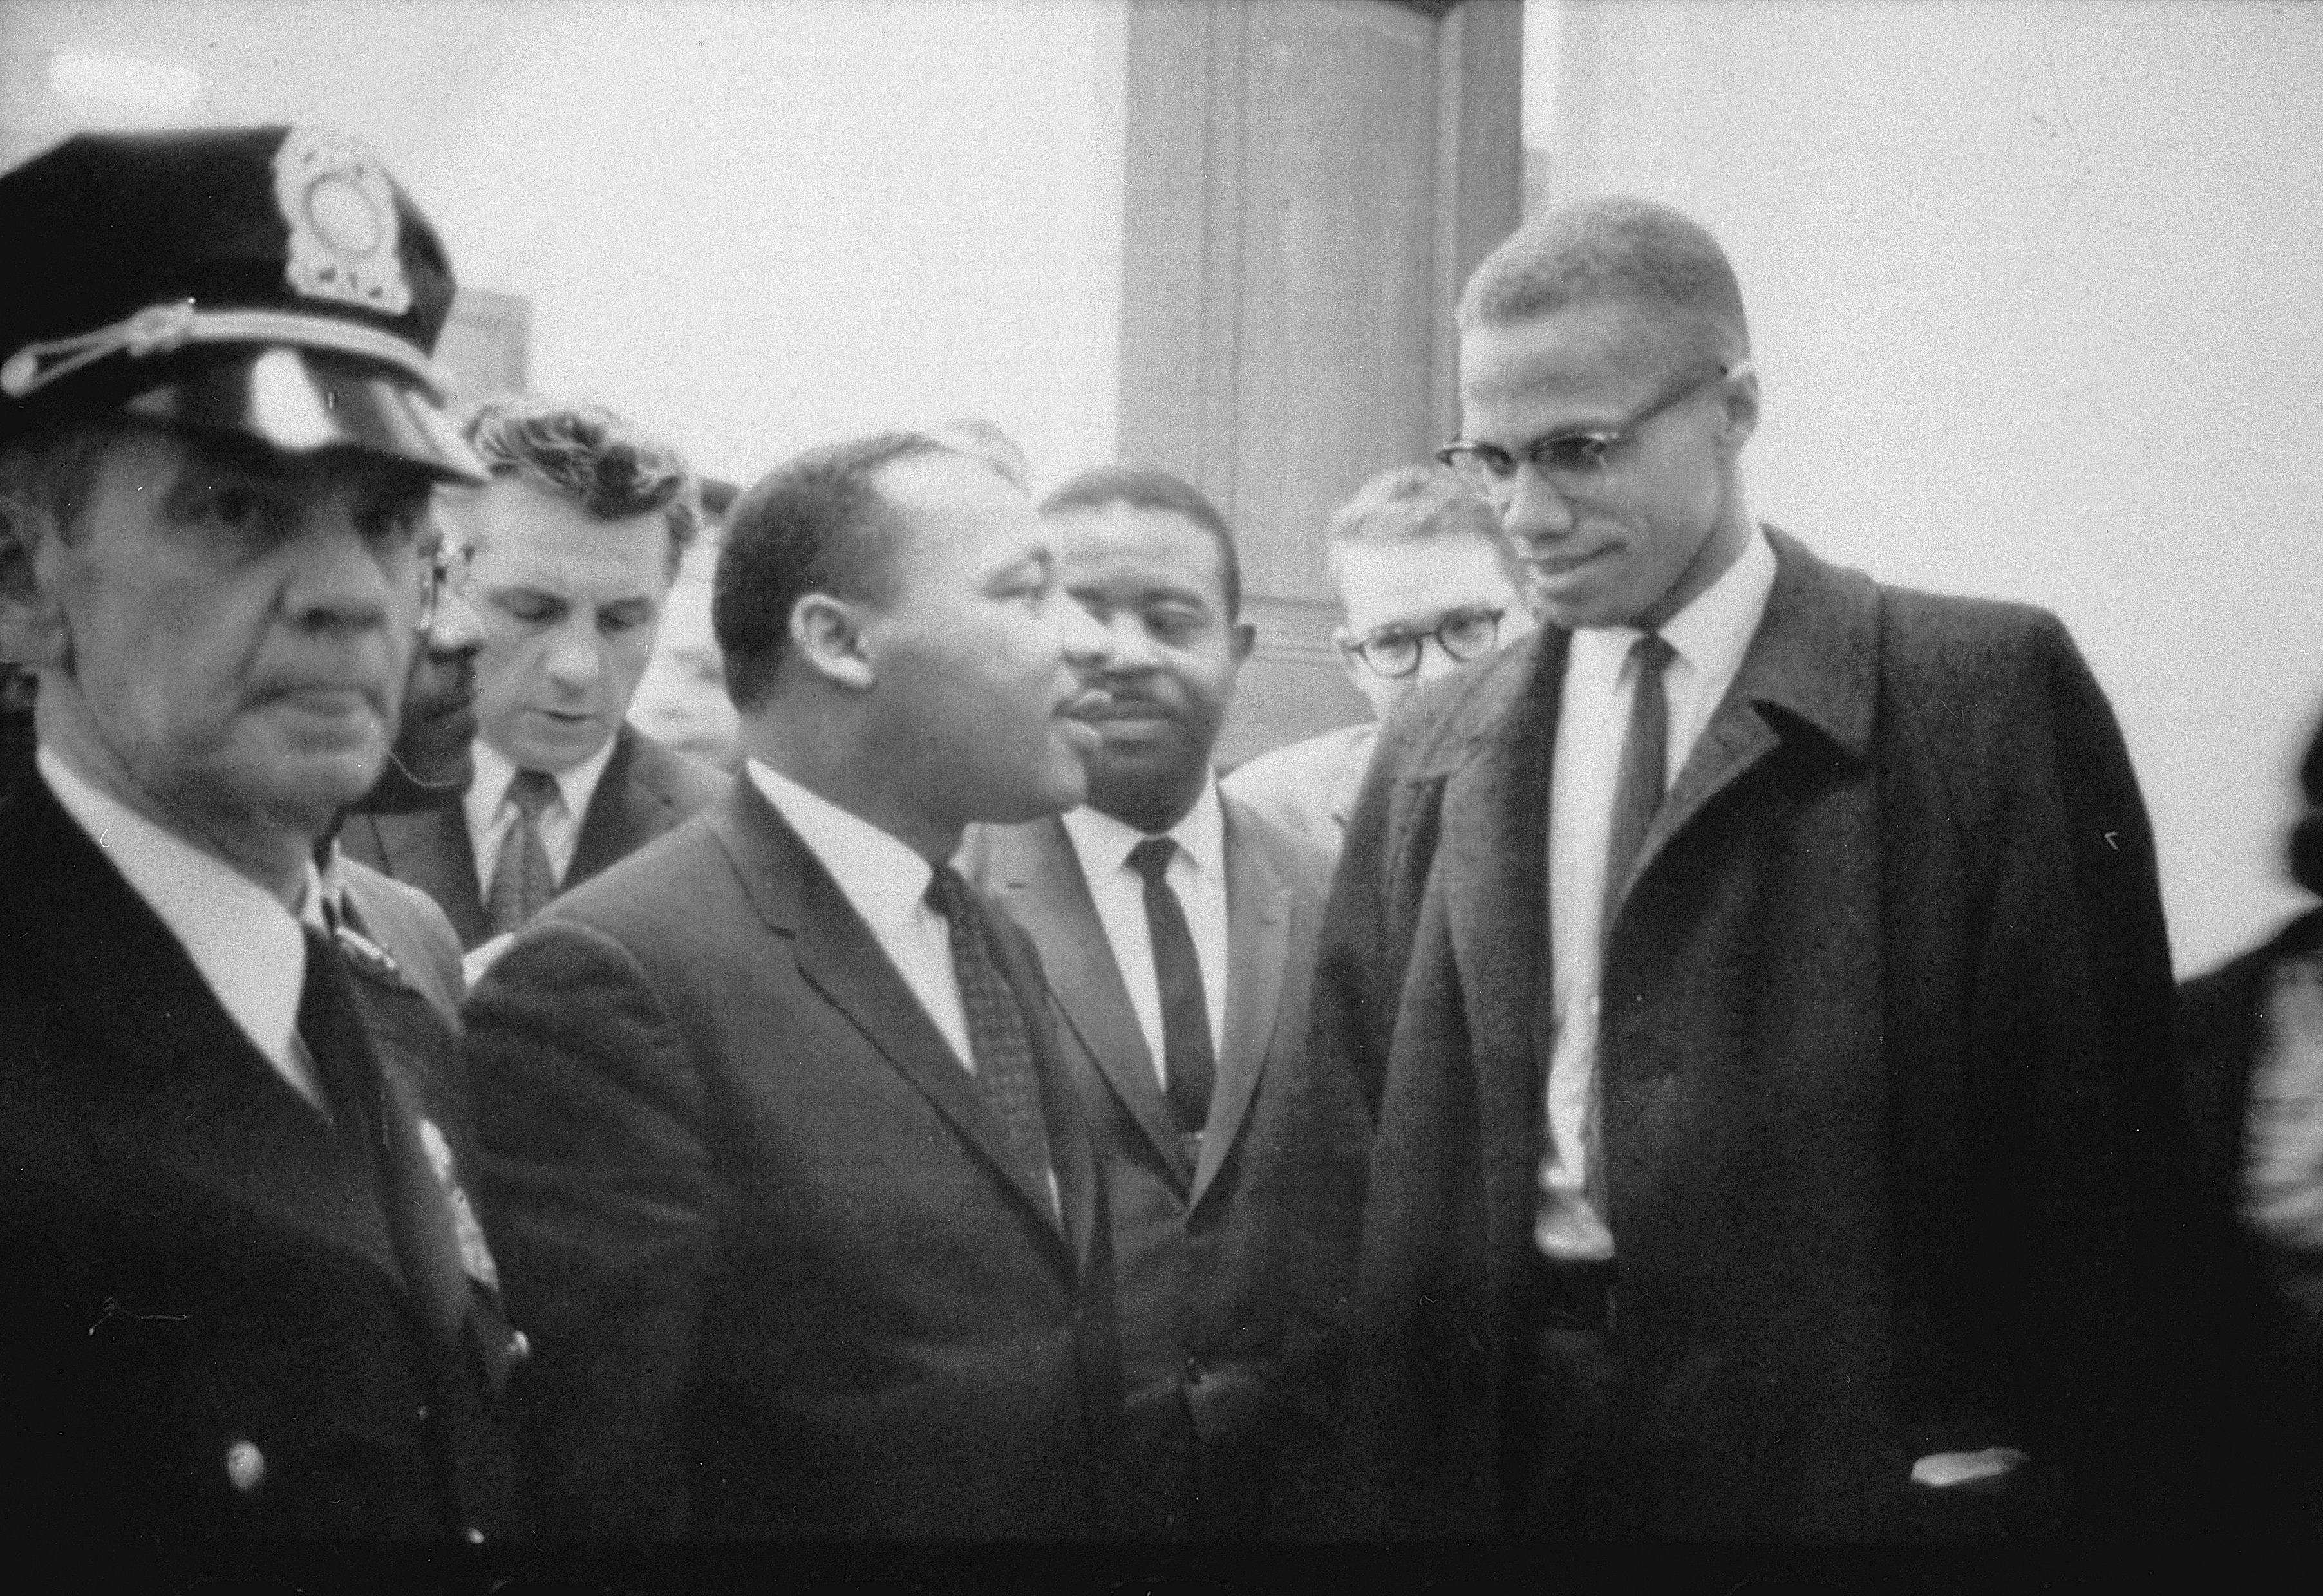 mlk vs malcolm x Martin luther king jr and malcolm x: icons for the civil rights movement - martin luther king jr and malcolm x were two individuals who not only helped the african-american plight during the civil rights movement, but served as icons to.